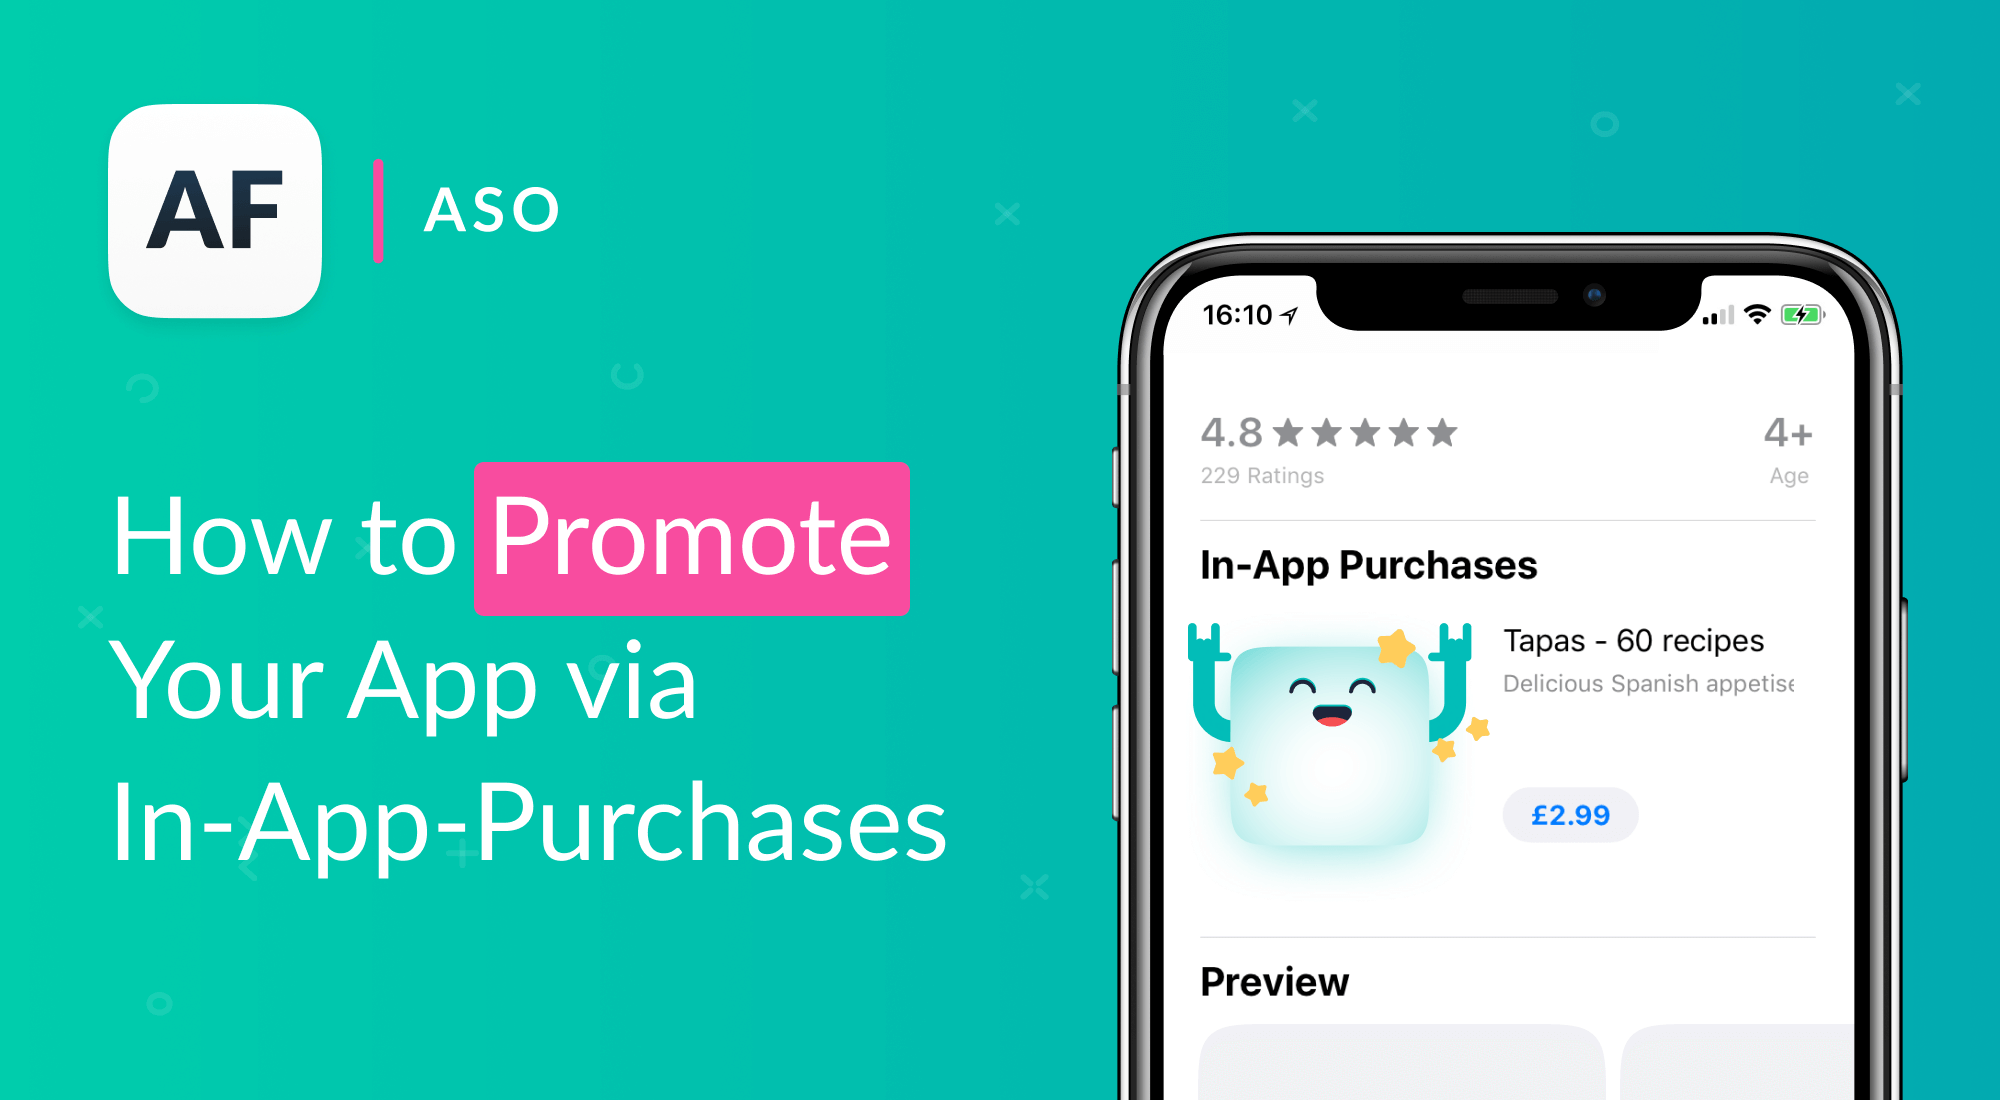 Advanced App Store Optimization: How to Use In-App-Purchases to Gain More App Visibility